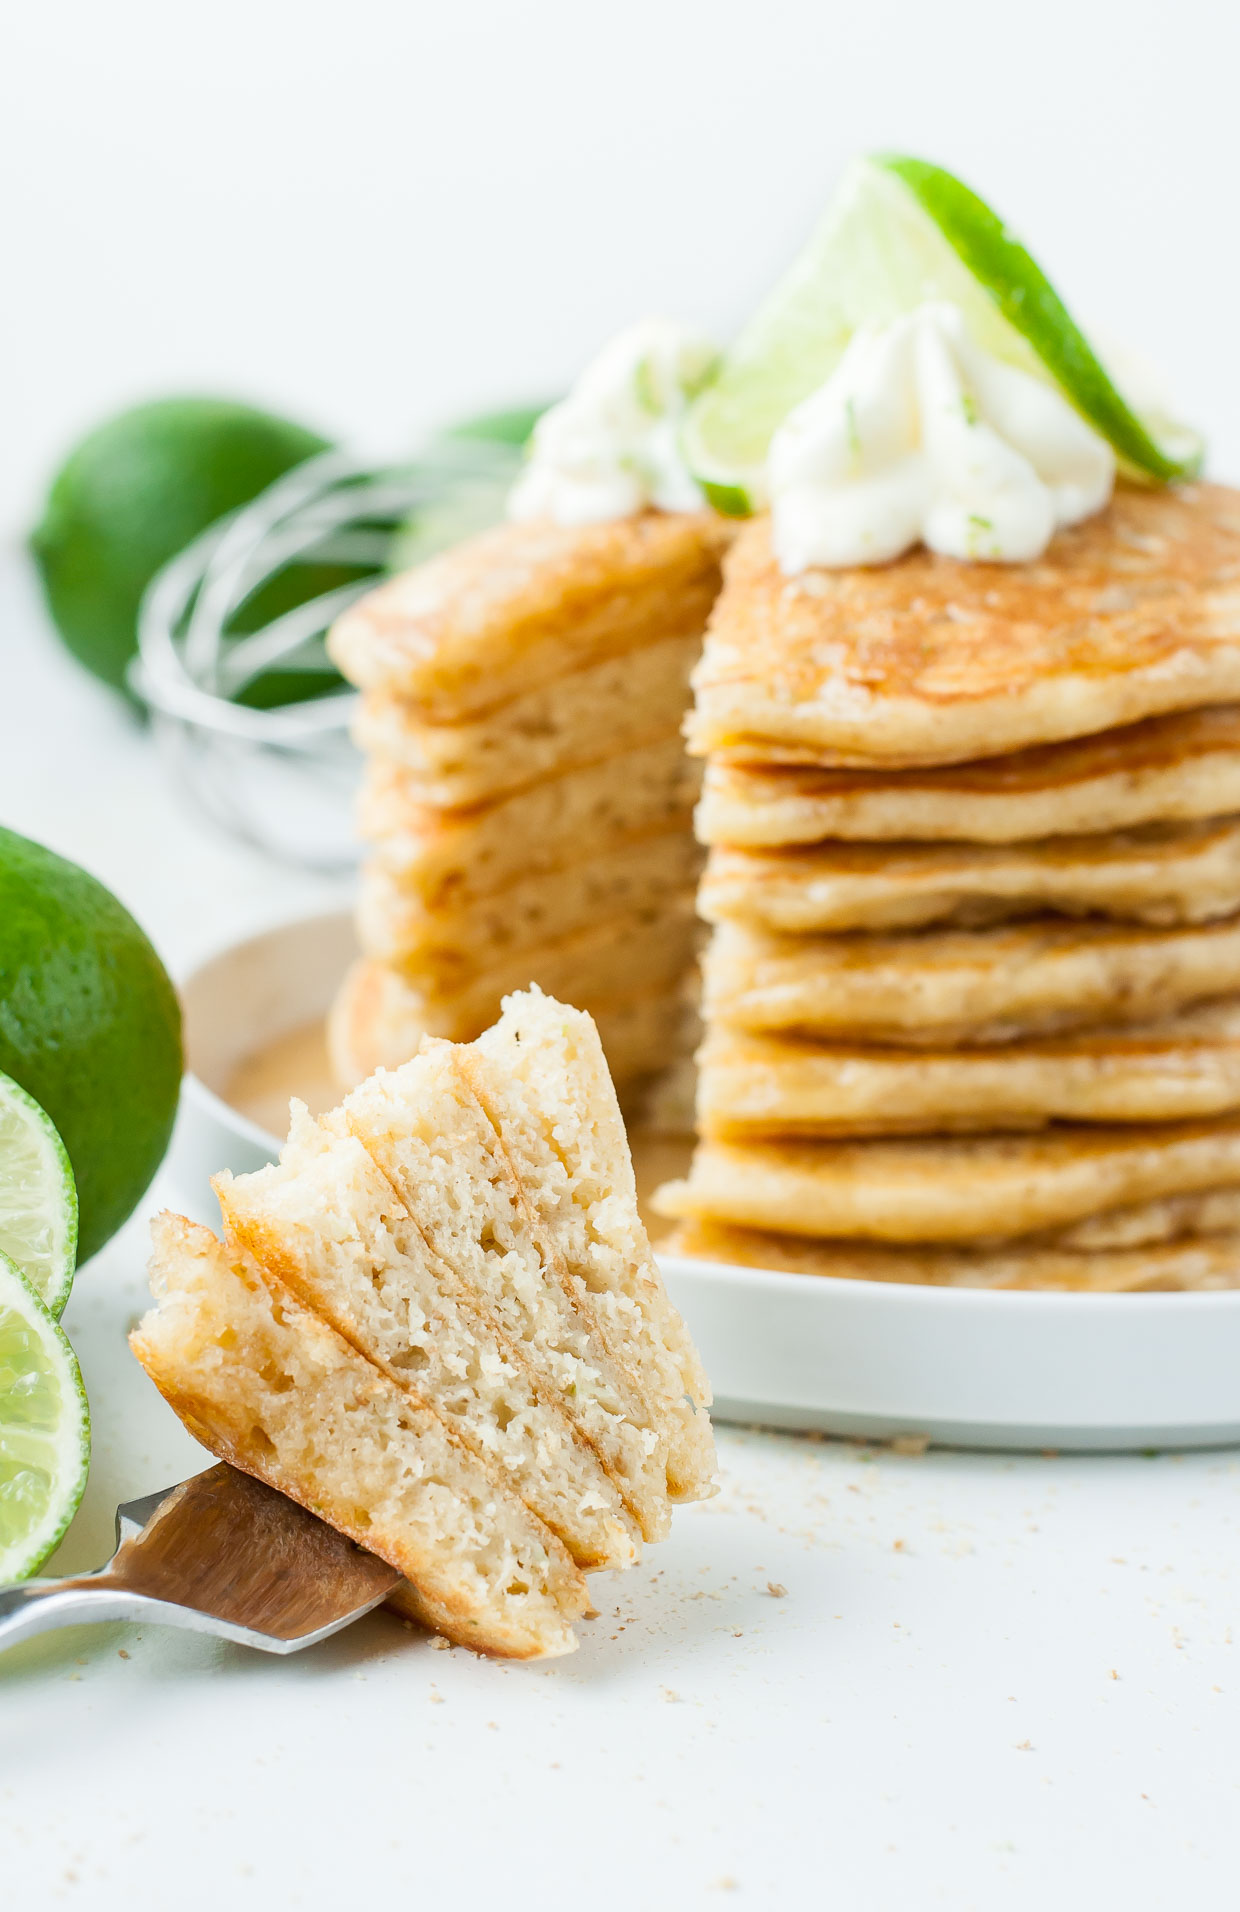 Key Lime Pie Pancakes EXIST!!!!! and they're beyond amazing